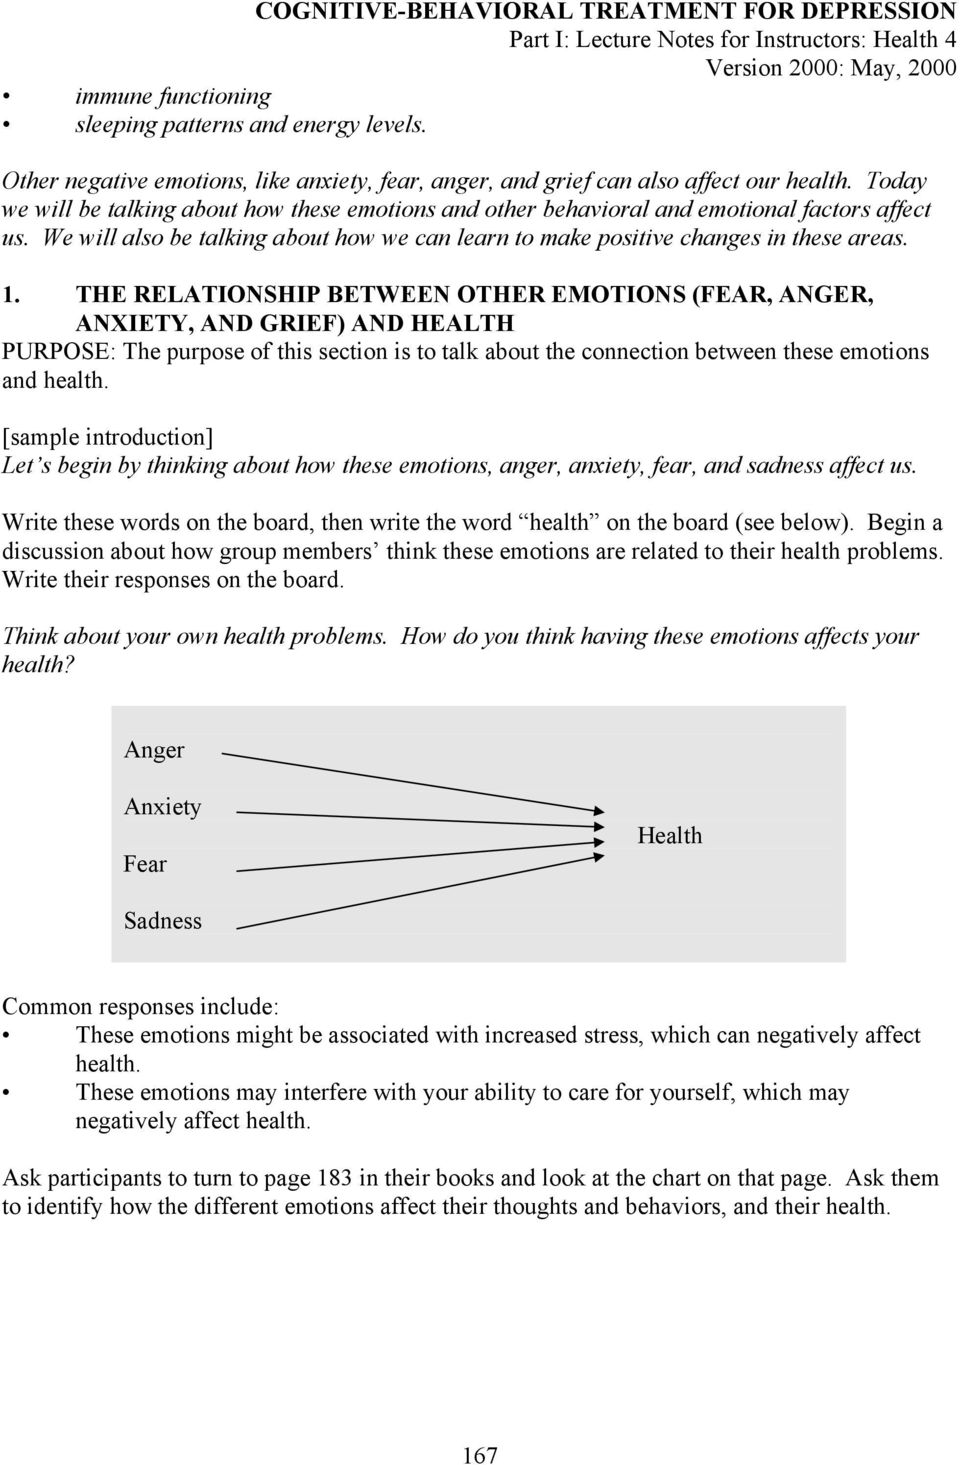 THE RELATIONSHIP BETWEEN OTHER EMOTIONS (FEAR, ANGER, ANXIETY, AND GRIEF) AND HEALTH PURPOSE: The purpose of this section is to talk about the connection between these emotions and health.